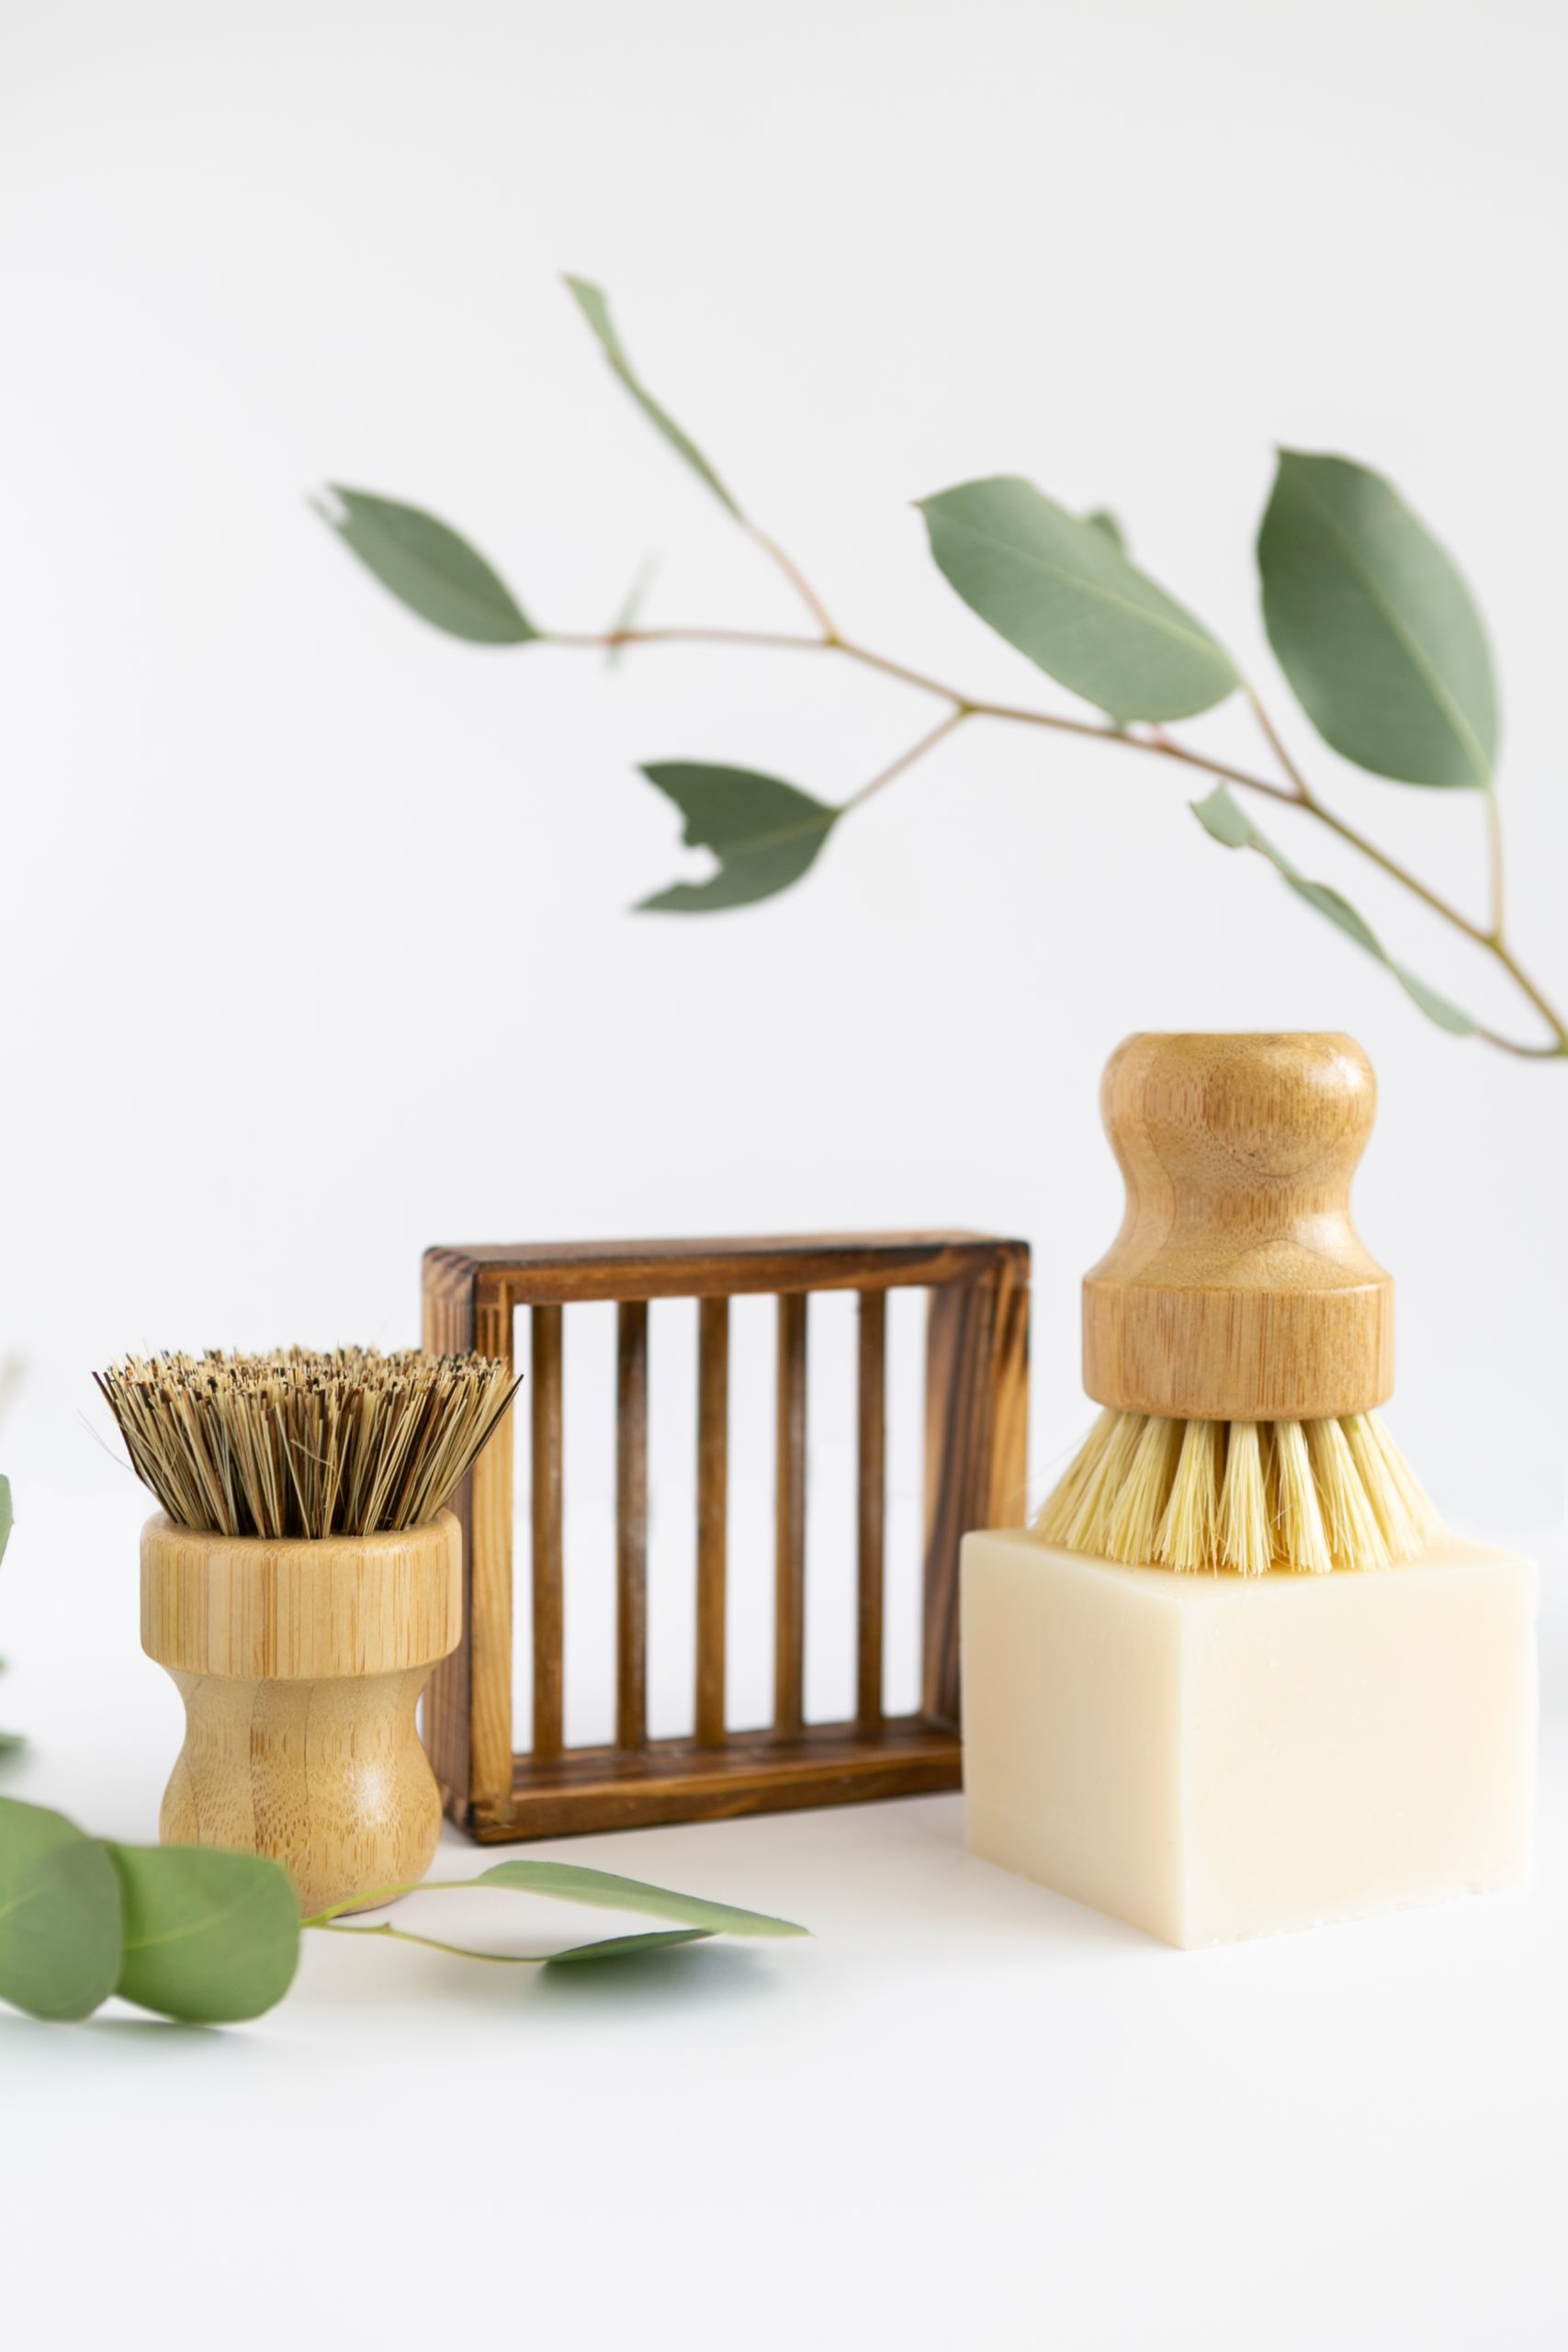 Bamboo Brush and Sandstone Soap Dish Sandstone Soap Dish is made of Engineered Stone with painted Bamboo Wood Grain design around the sides. All Natural Bamboo Dish Brush with Organic Union Bristles